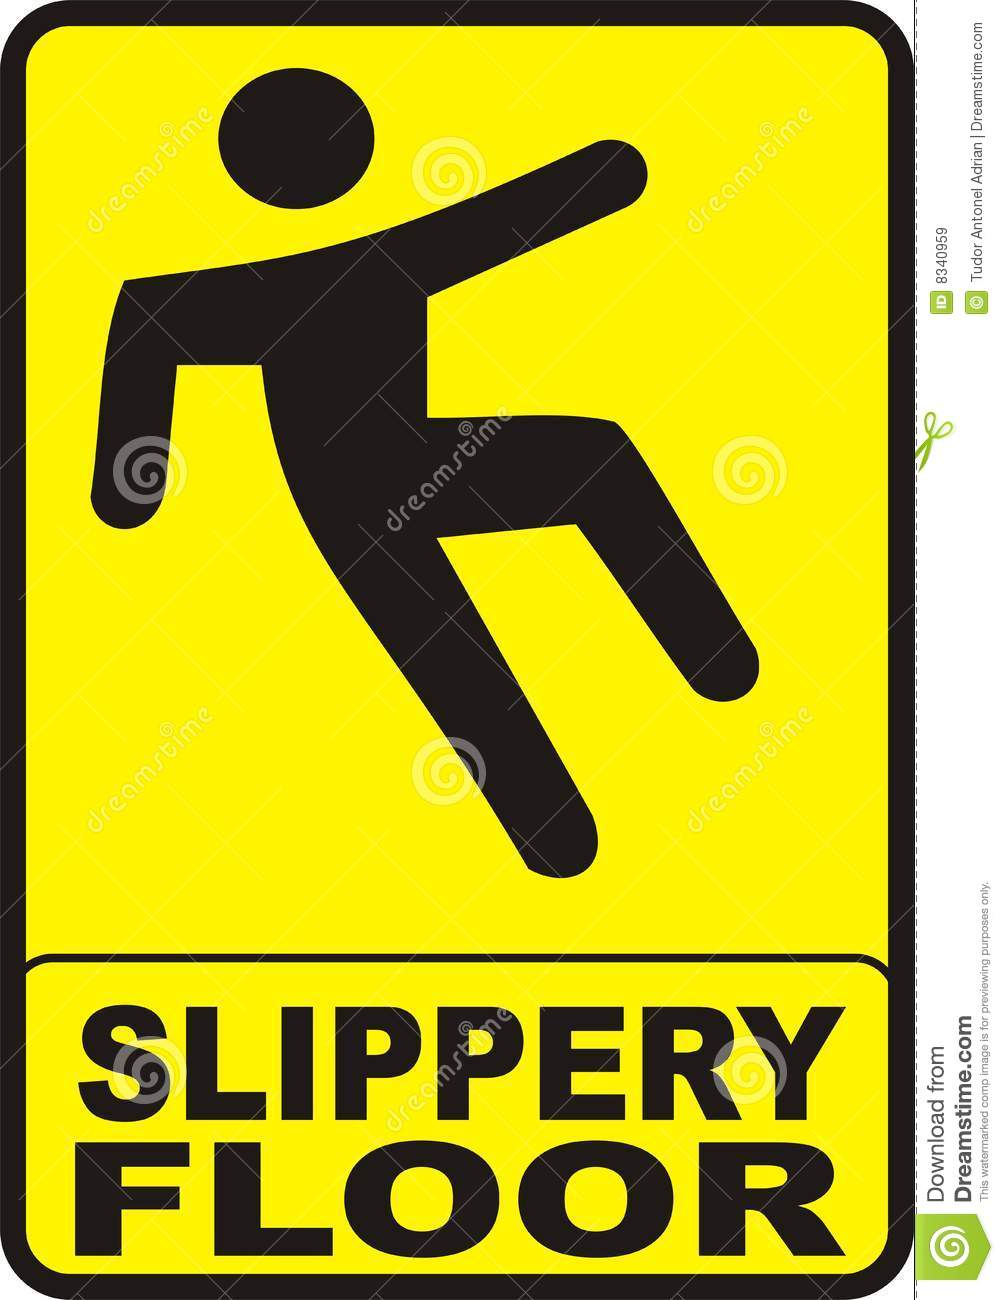 Slippery Floor Sign Royalty Free Stock Images - Image: 8340959